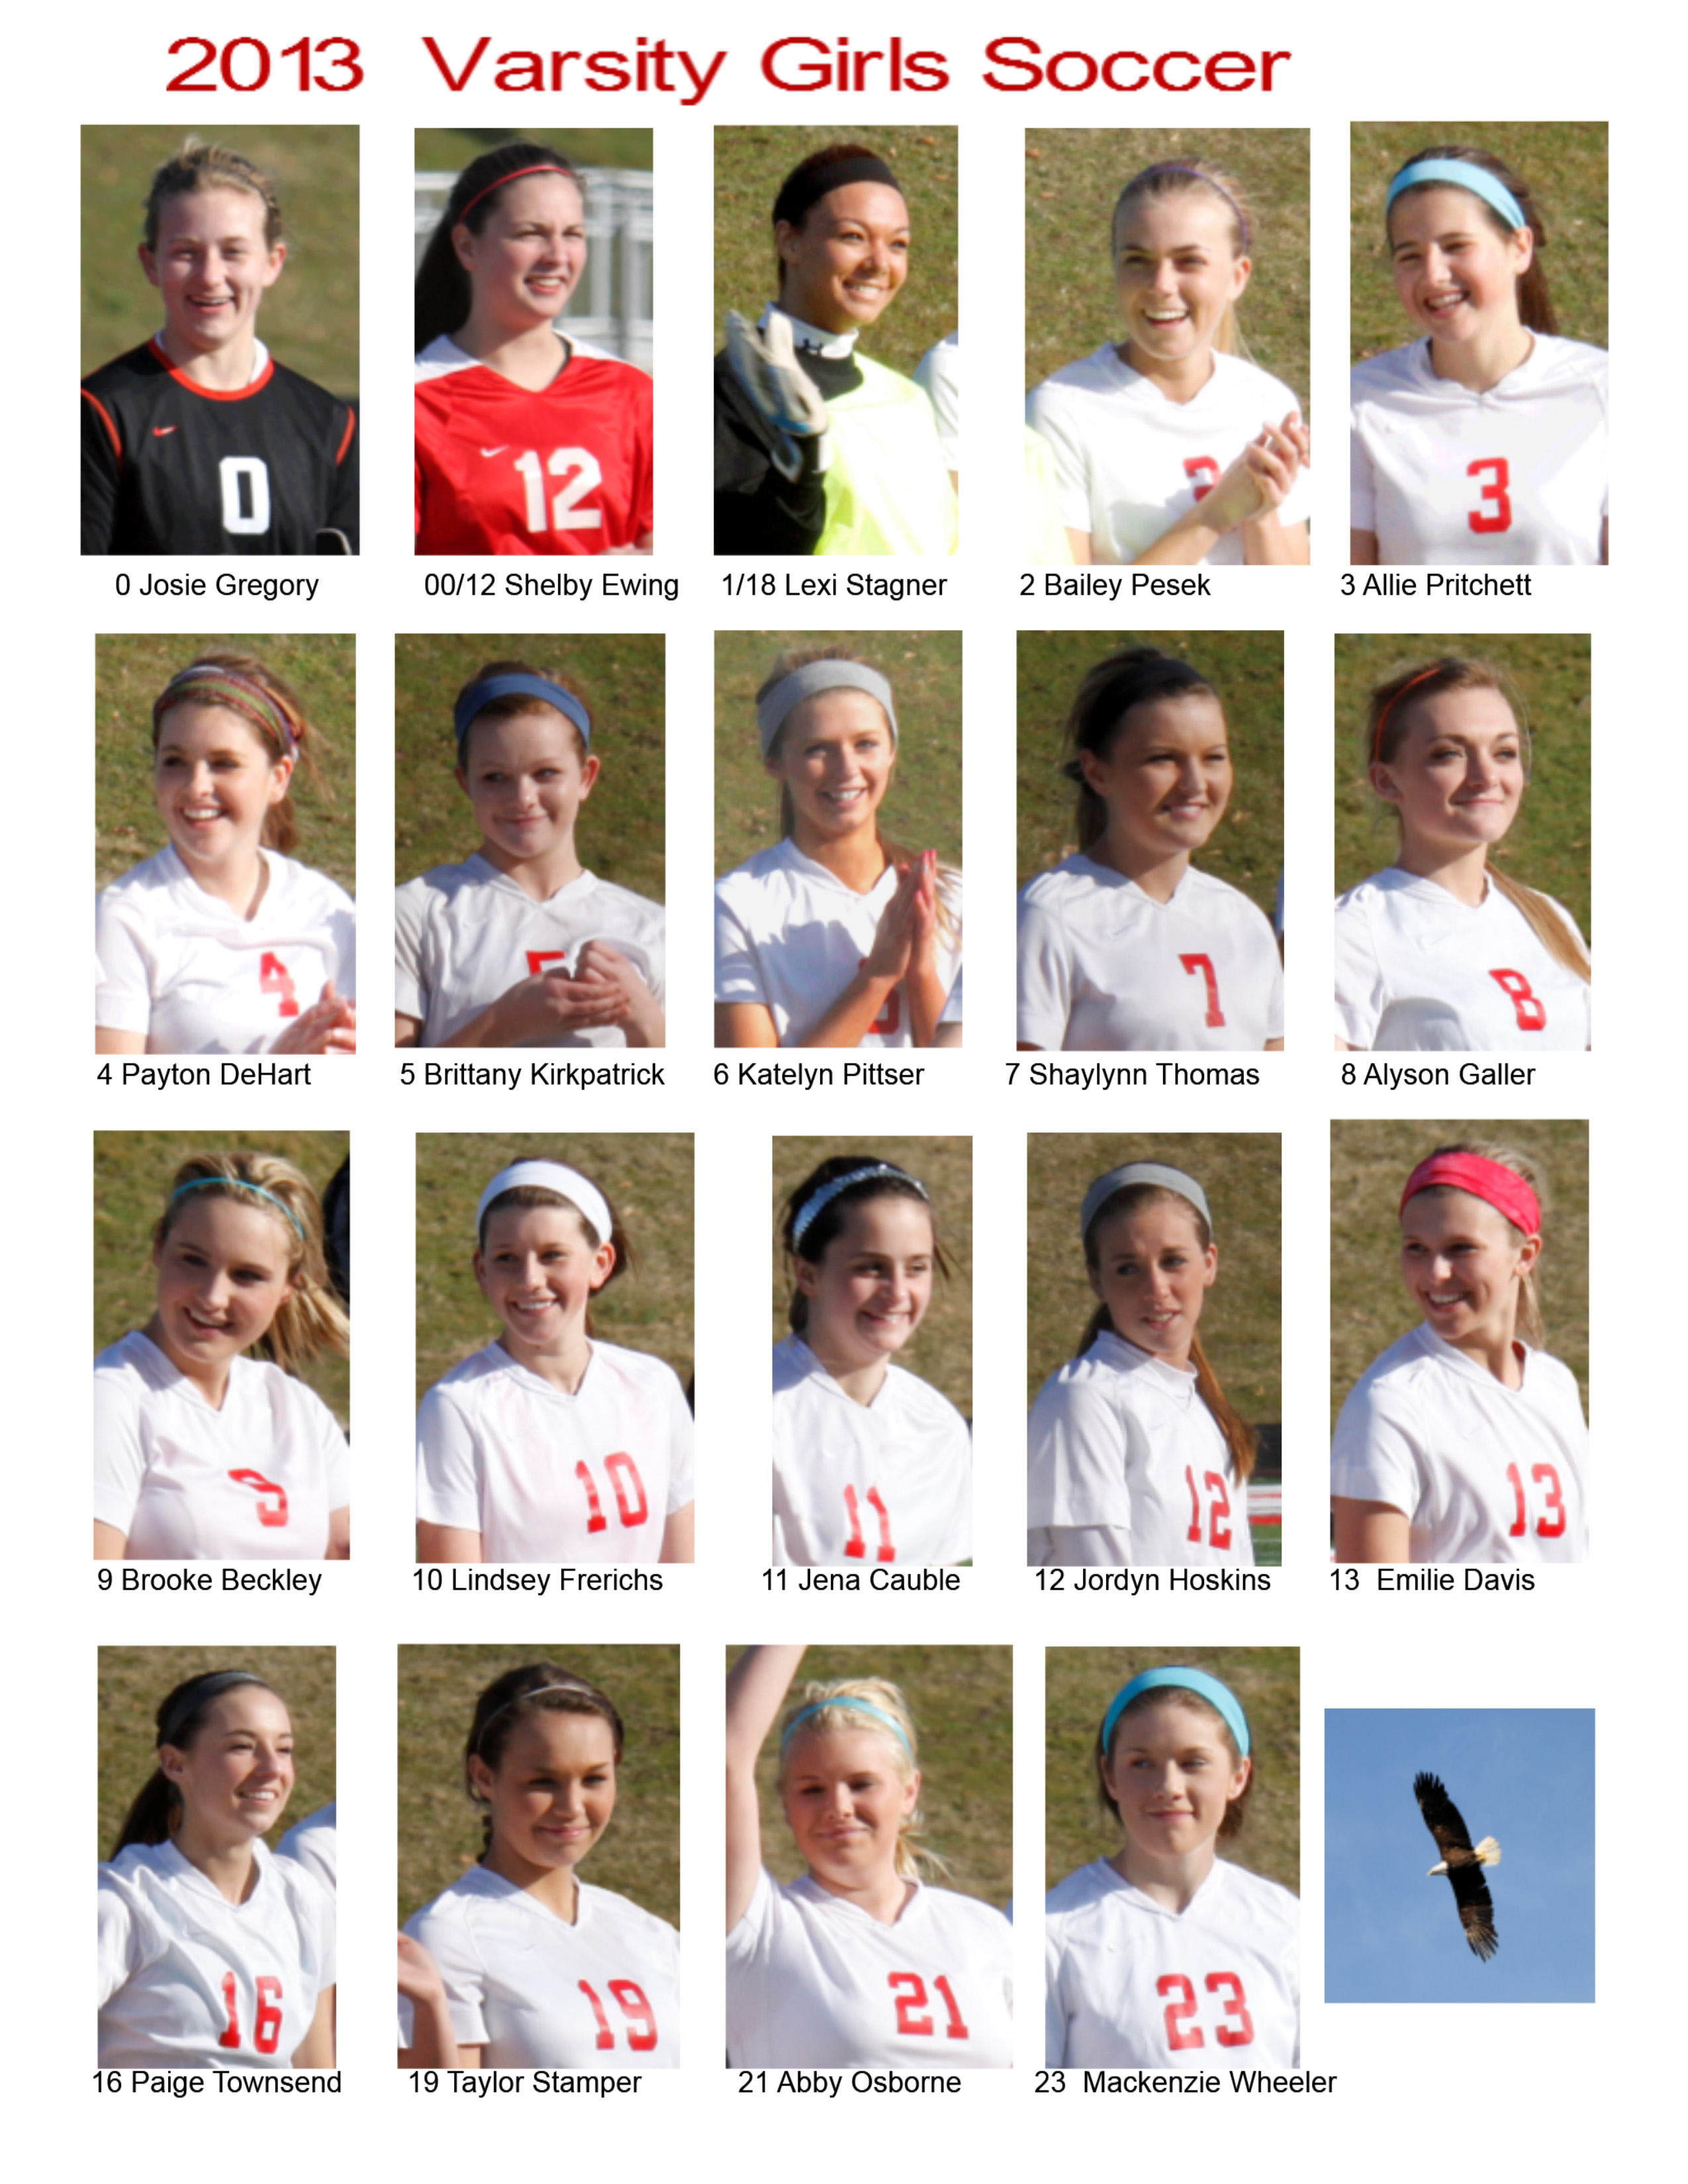 2013 Varsity Girls roster Picture